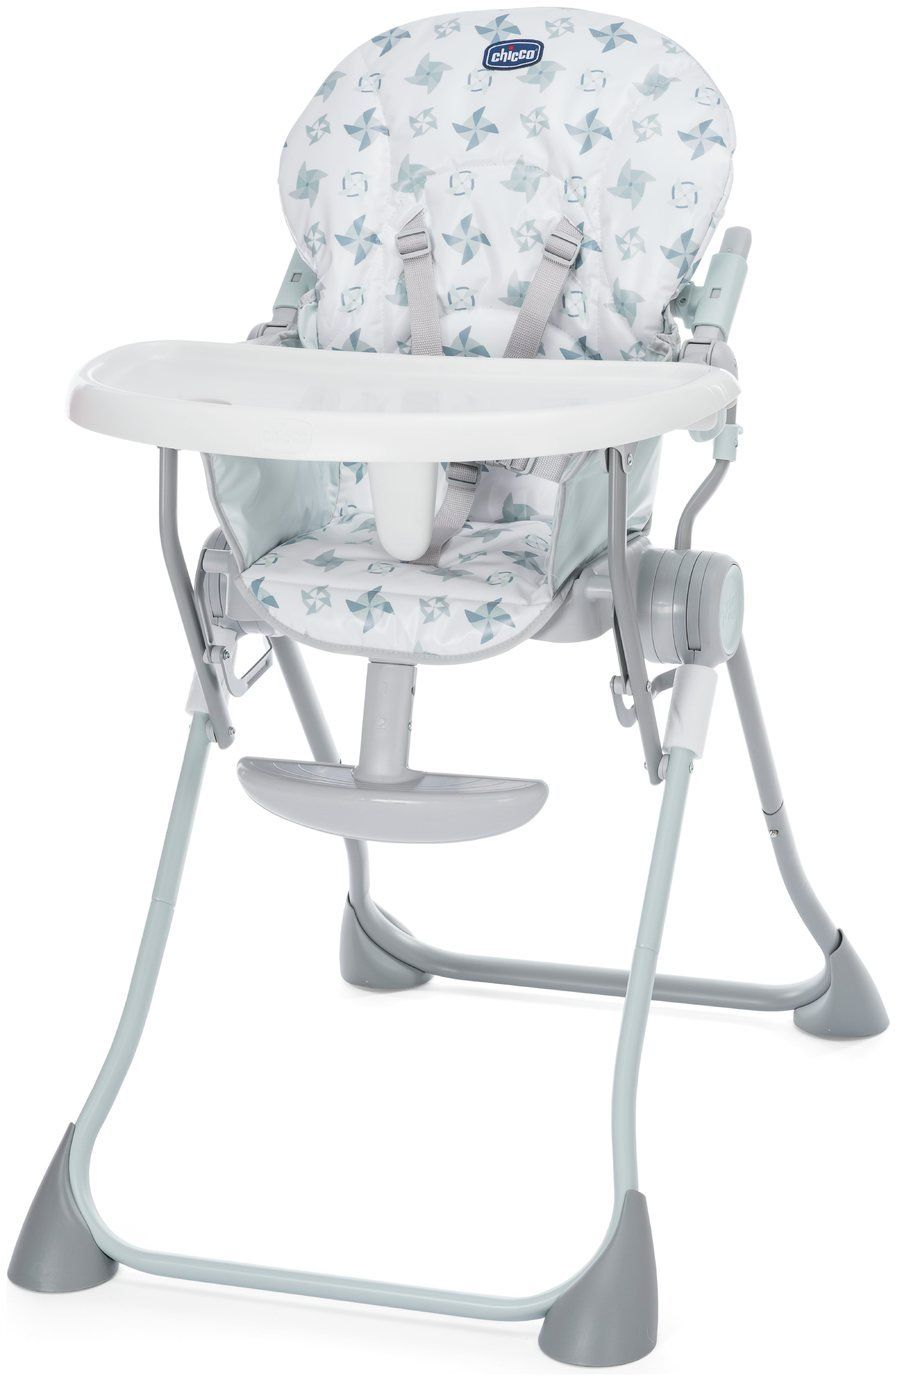 Chicco Pocket Meal Highchair Silver In 2020 Highchair Cover Baby Feeding Pillow Chairs For Sale